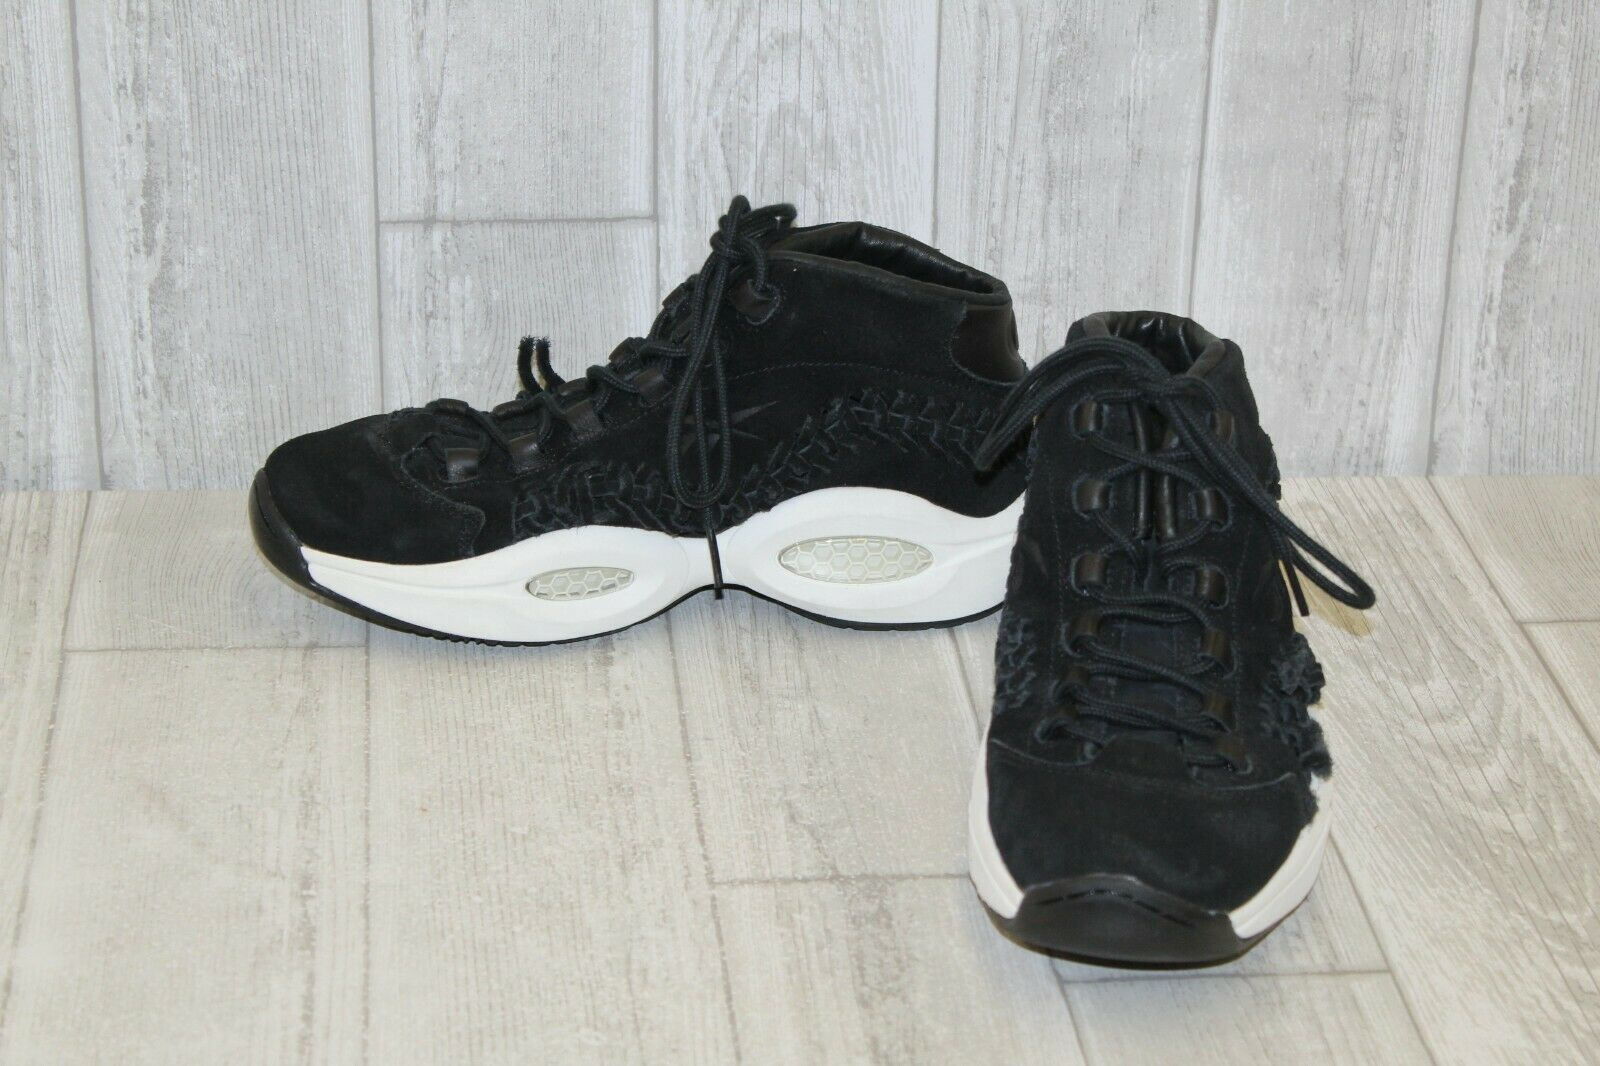 Reebok Question Mid HOF V72718 Black Suede Basketball Shoes Medium ... 741831982